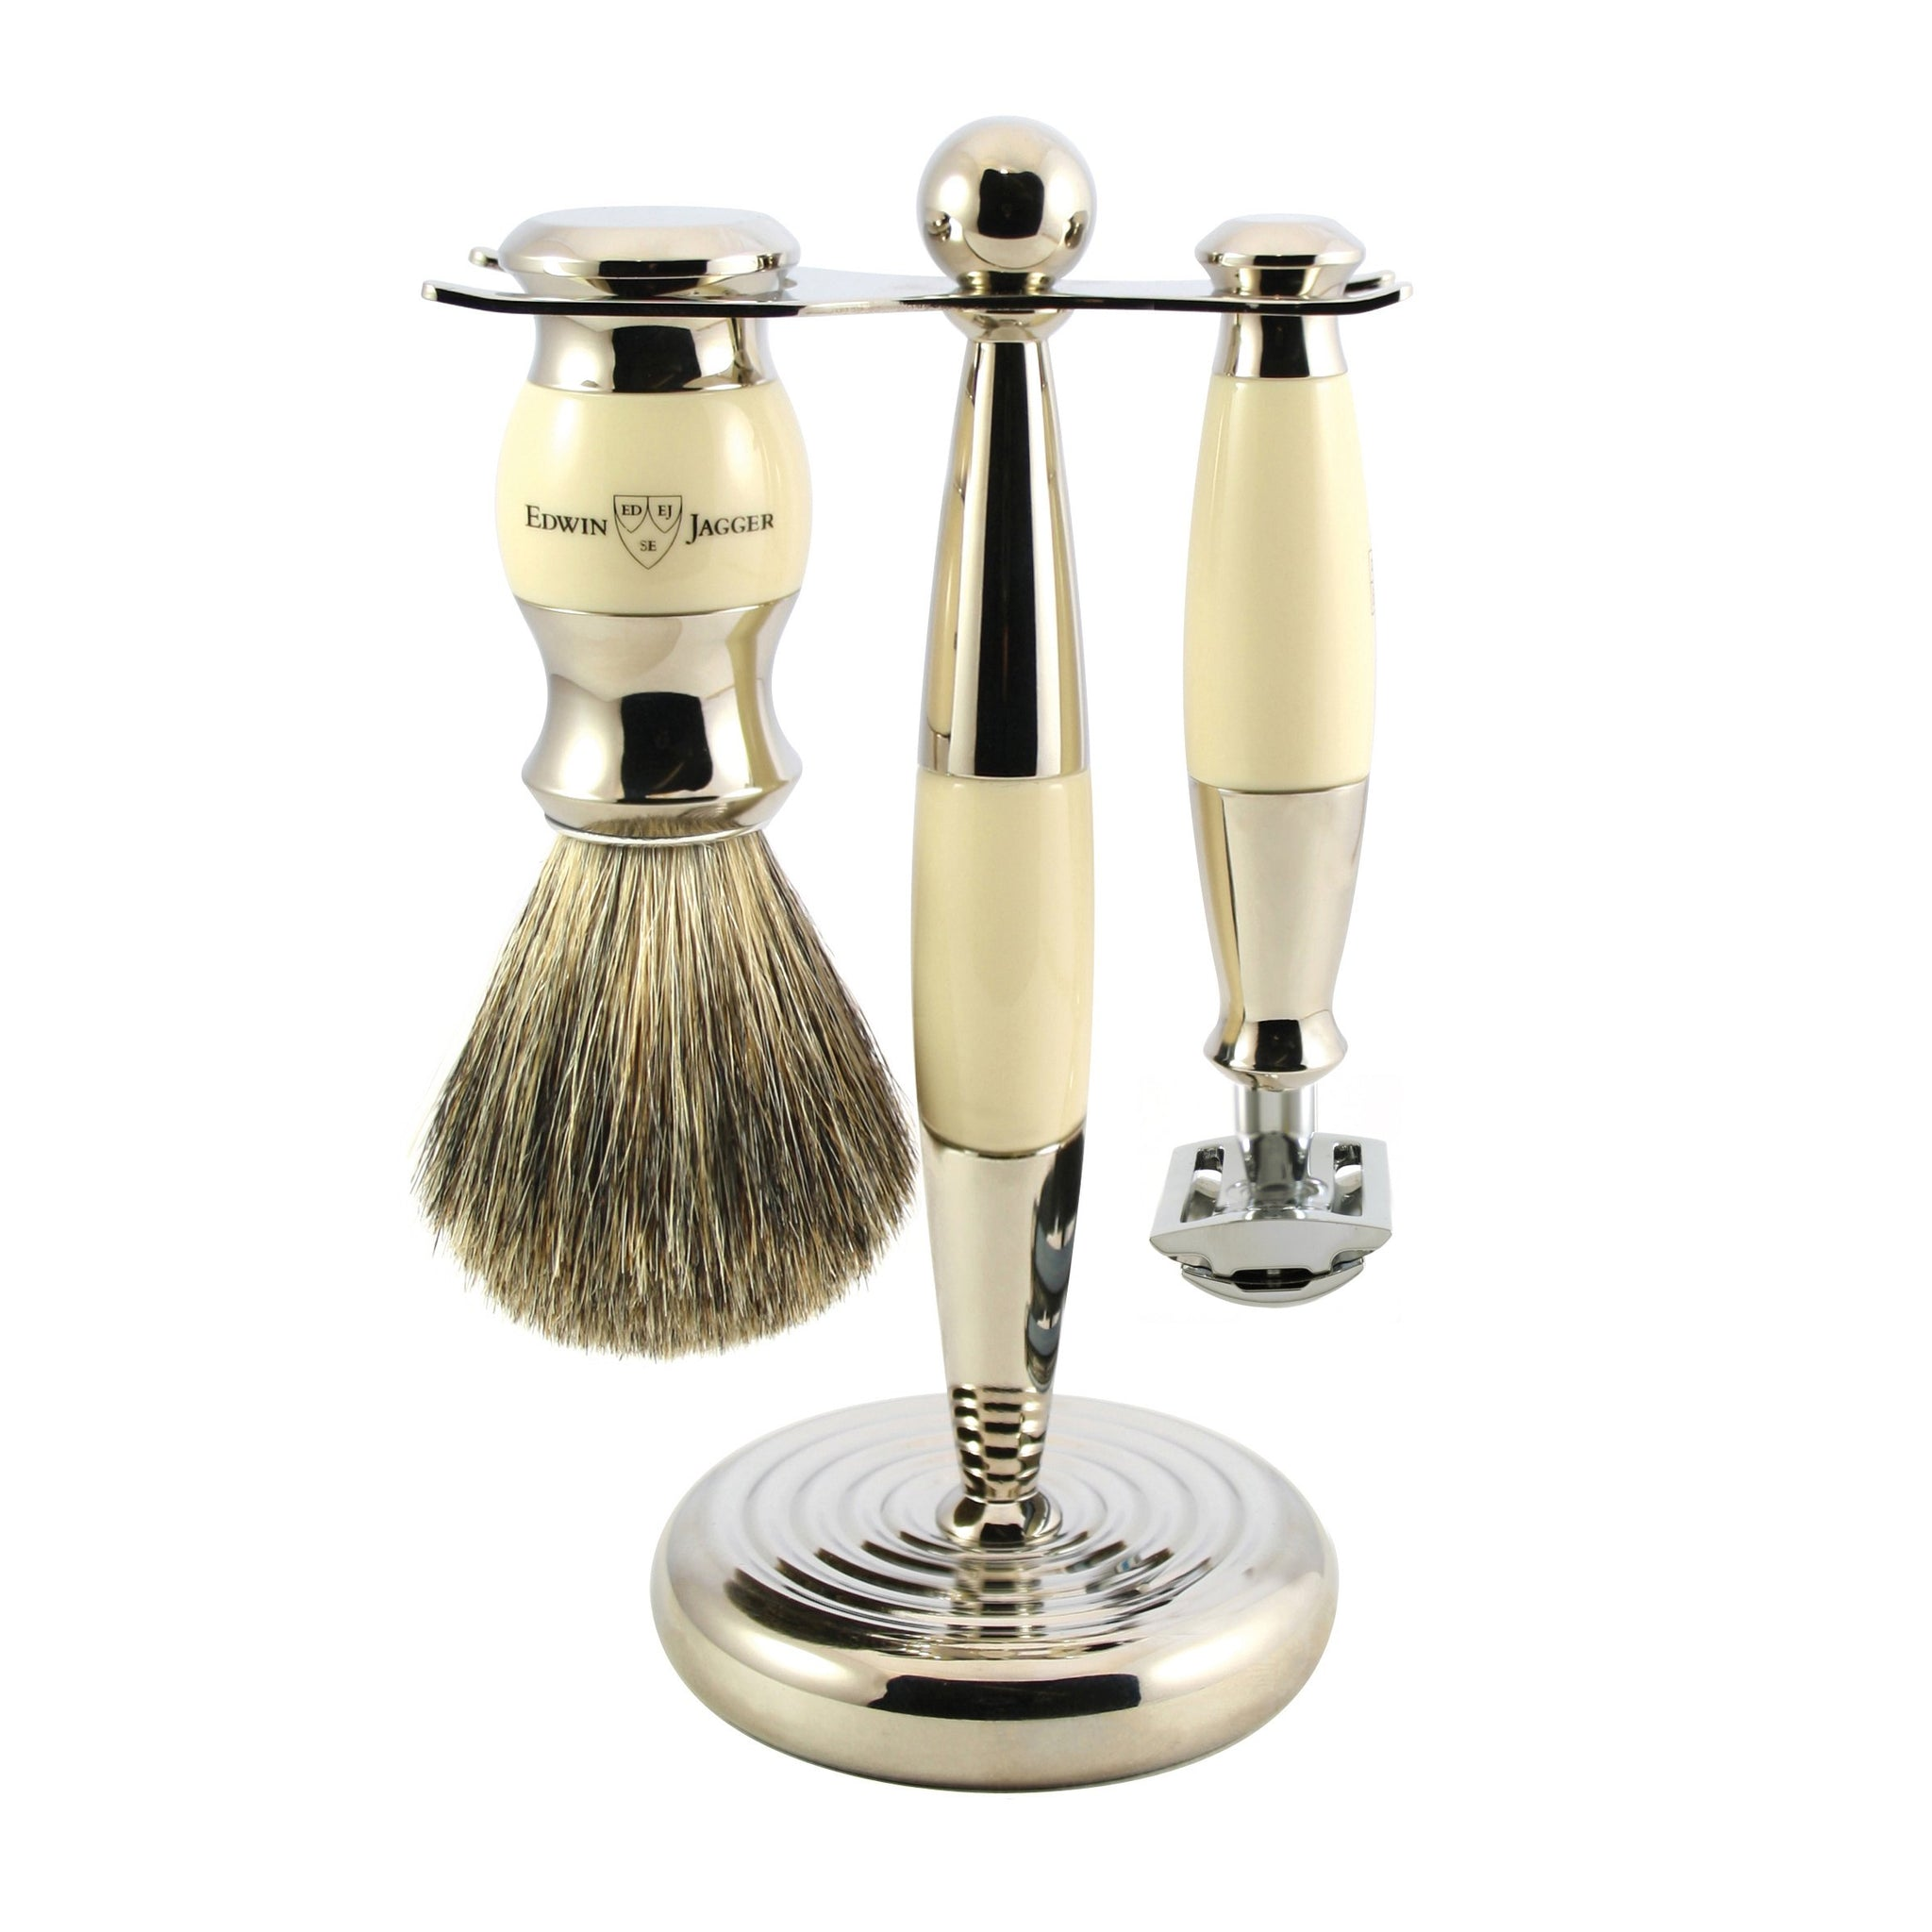 EDWIN JAGGER 3 PIECE IMITATION IVORY SHAVING SET S81M35711SR